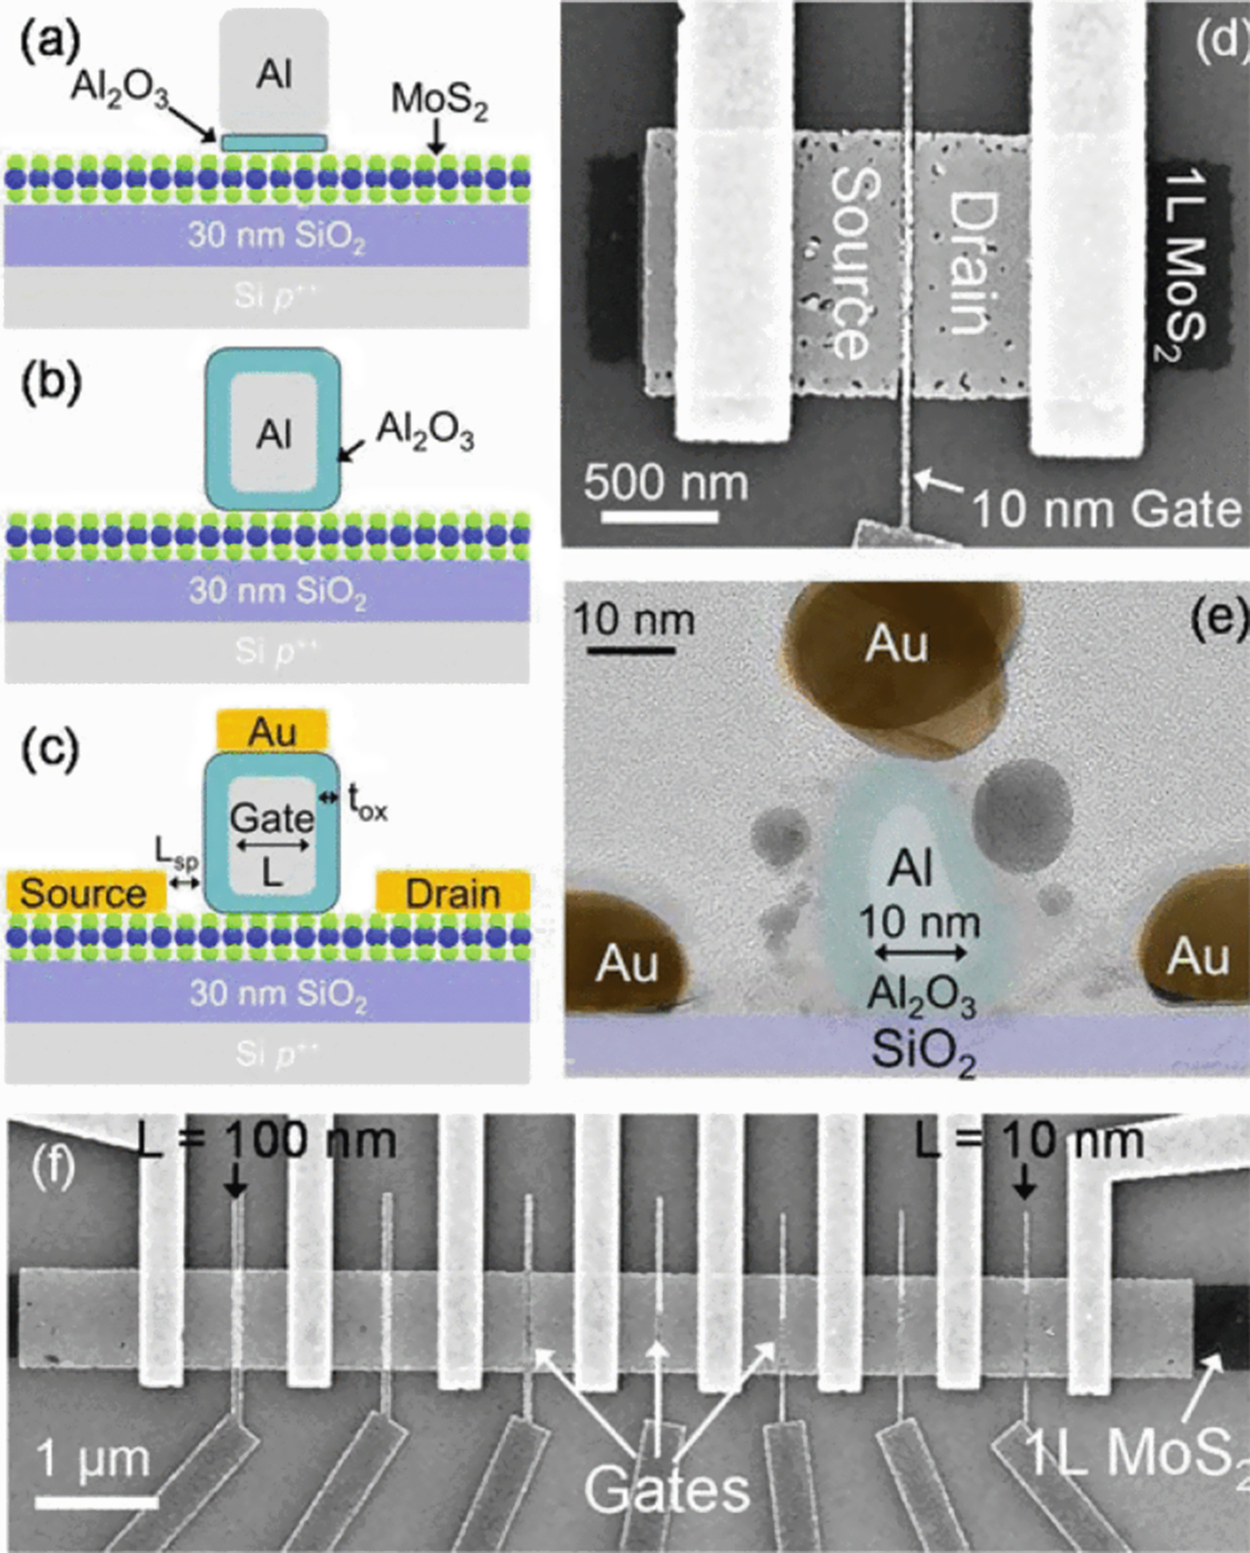 Heterogeneous Integration Of 2d Materials And Devices On A Si Other Circuits Gt Keypad Combination Lock Circuit Open Image In New Window